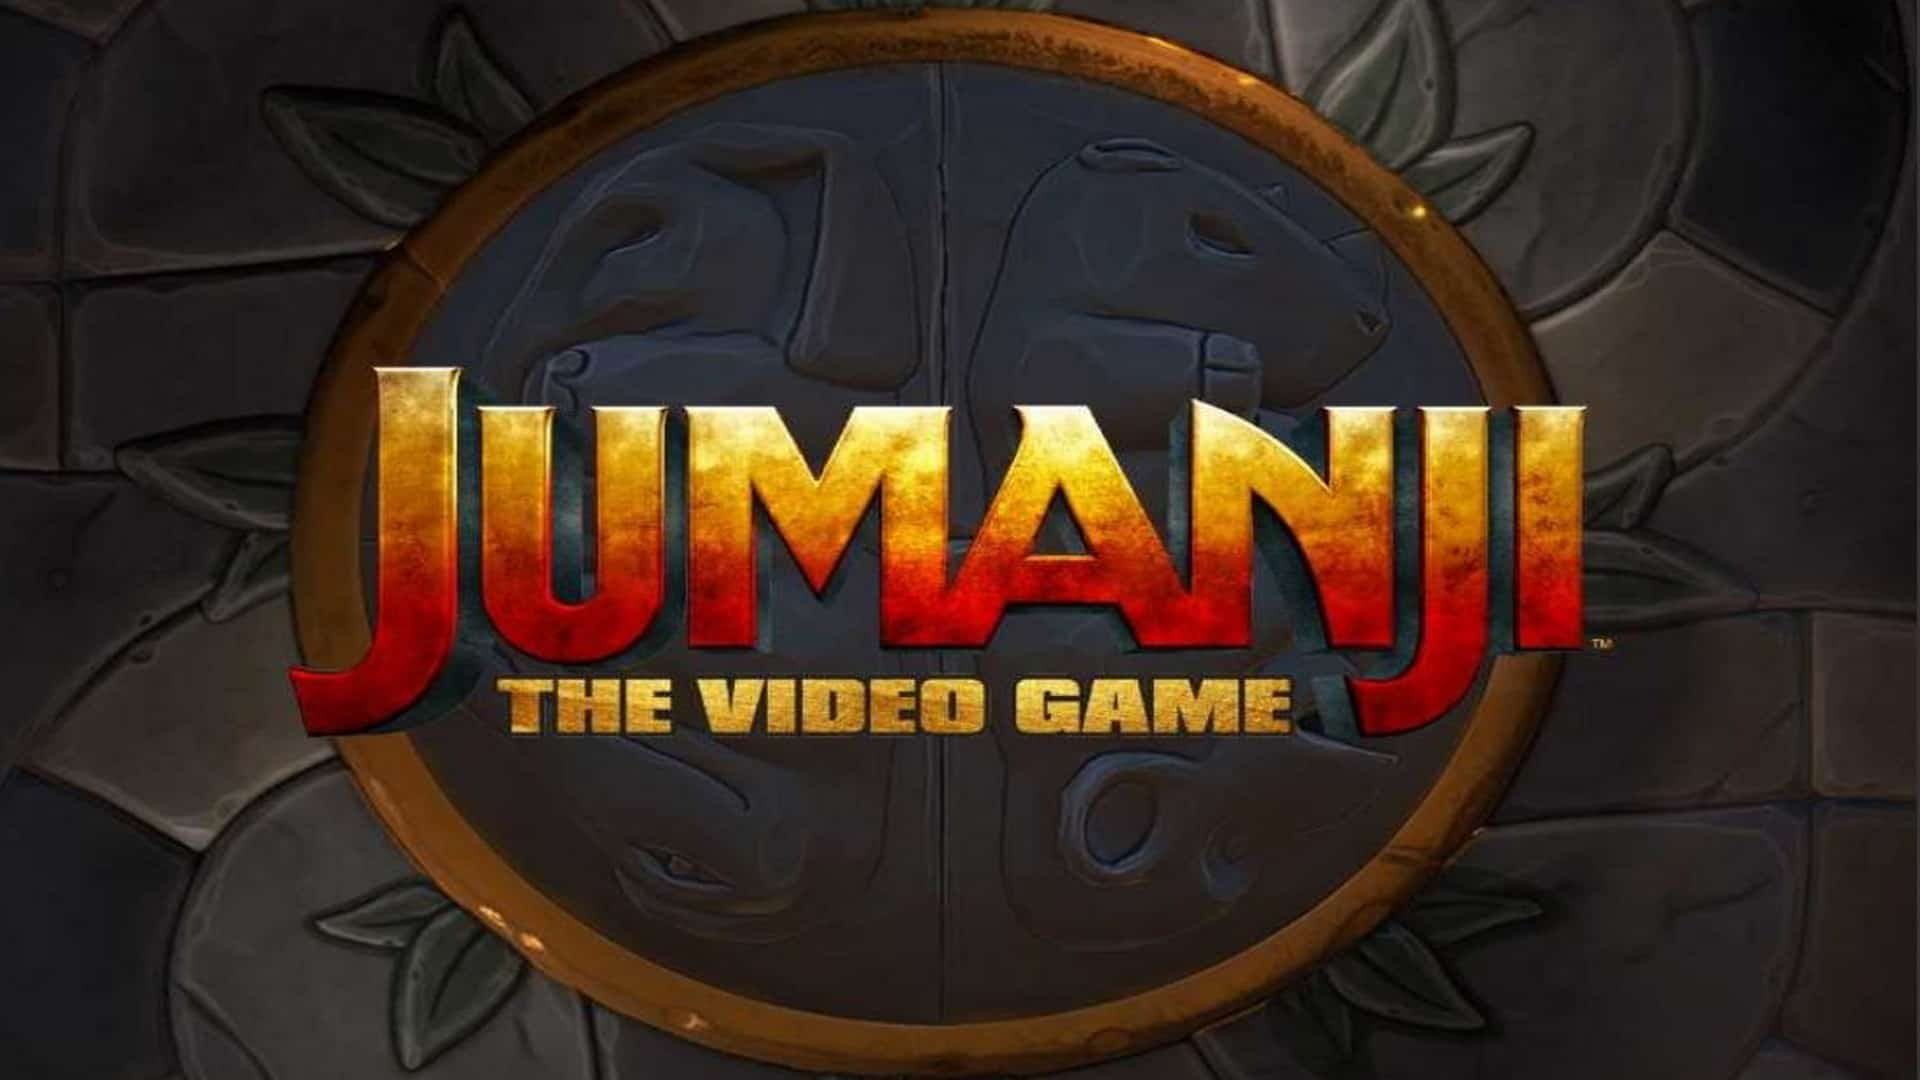 The Jungle Awaits As New Video Game Based On The Successful JUMANJI Film Franchise Launches November 15 2019